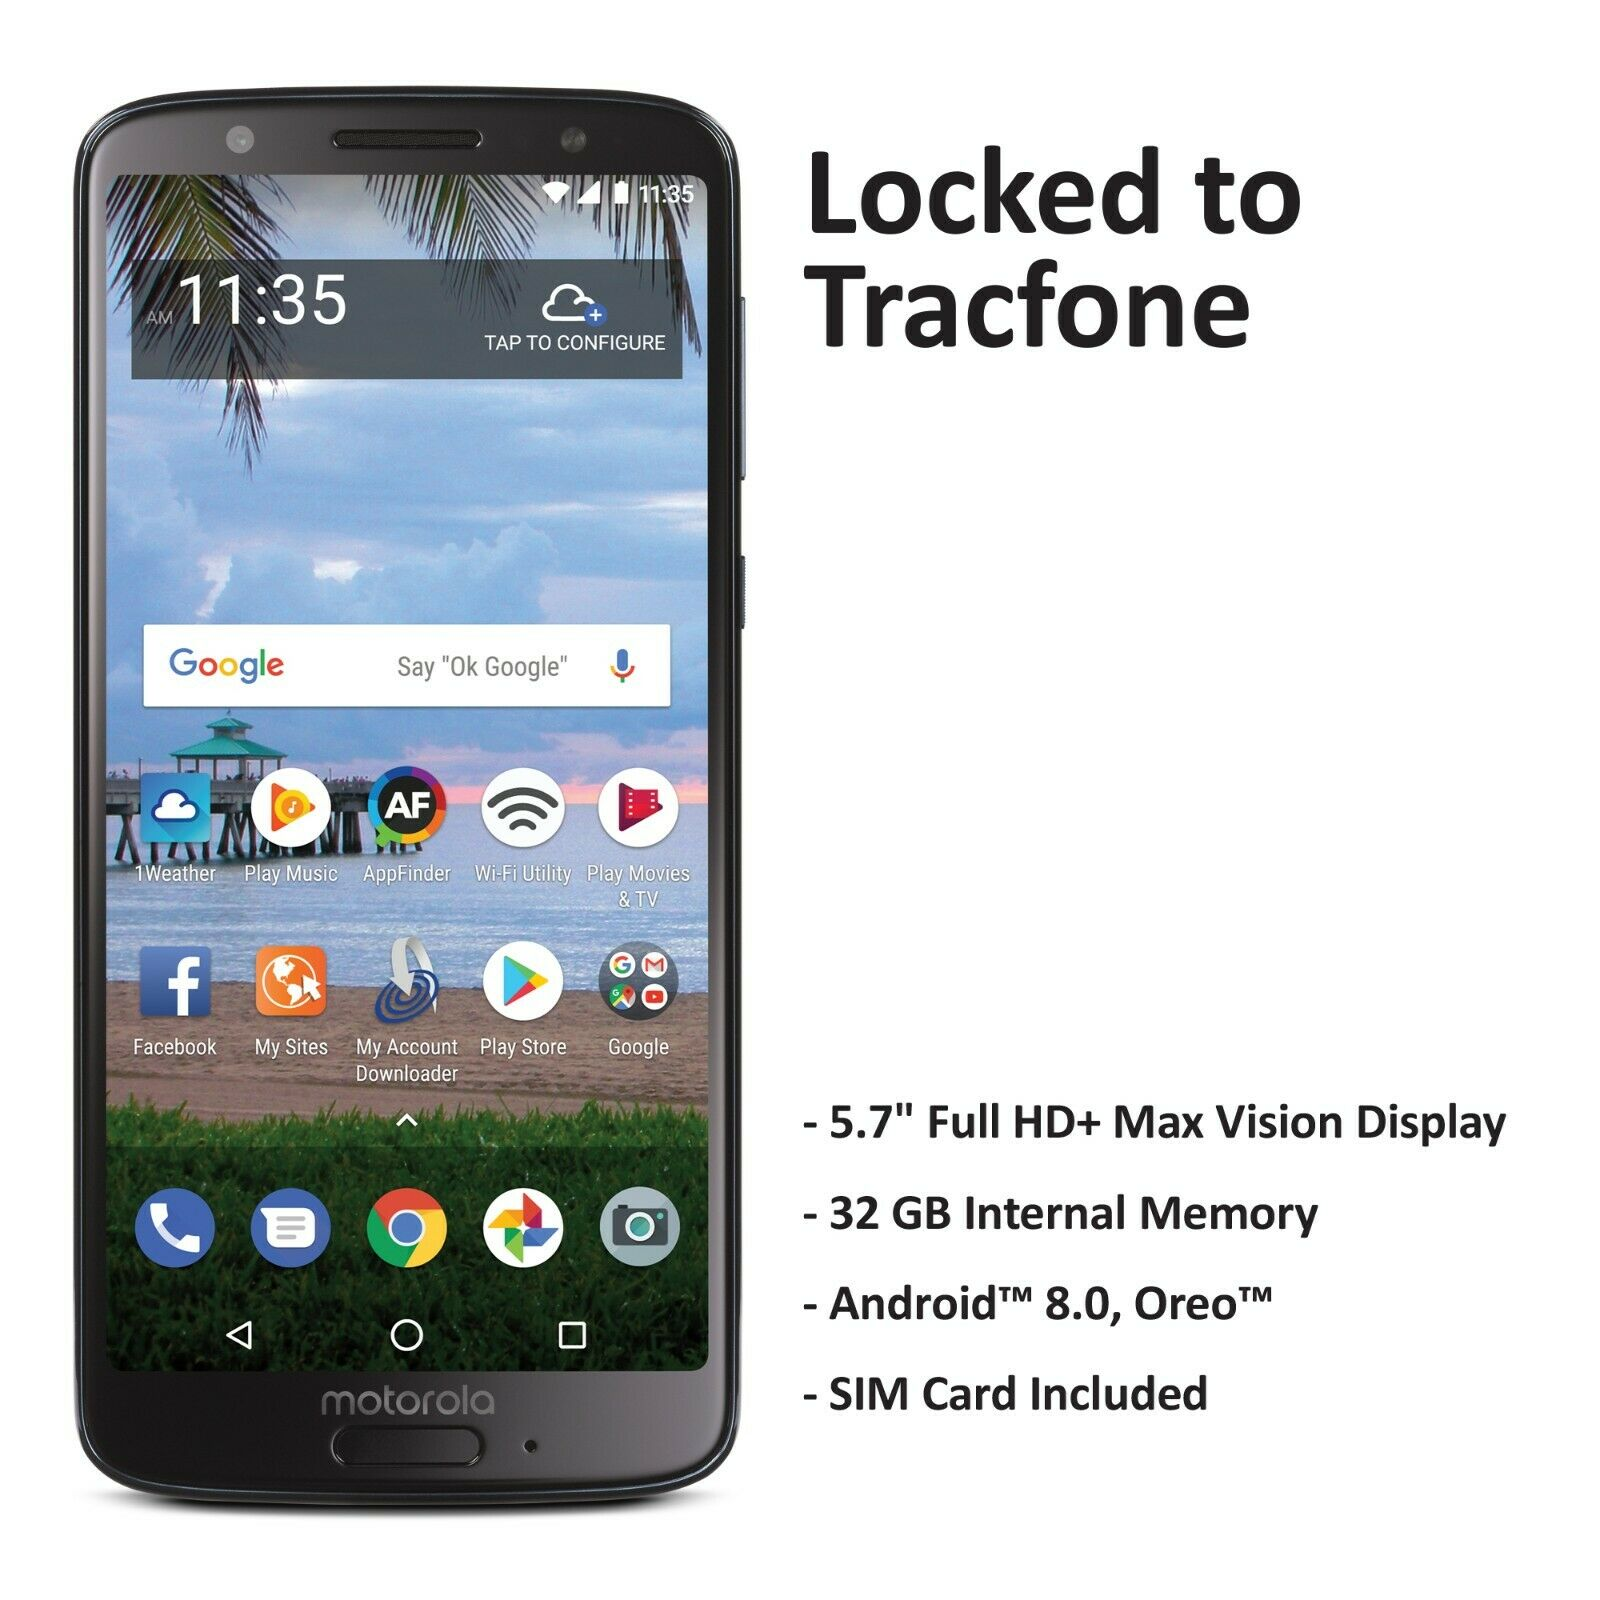 $50 eBay eGift Card w/ Purchase of Select Tracfone Device & Plan Activation